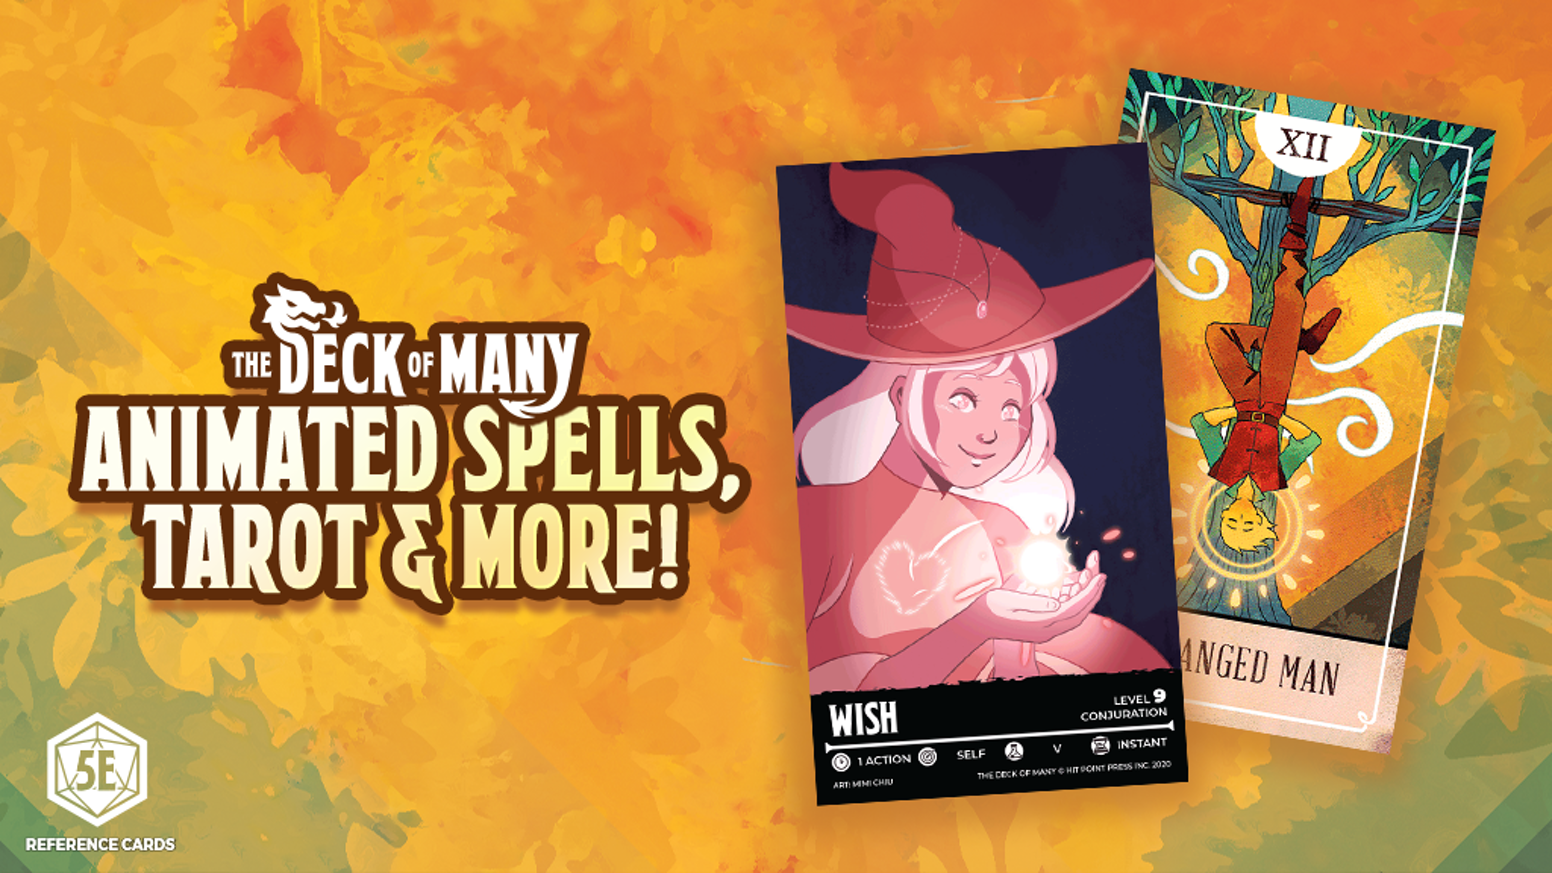 Cast your spells and more with style!